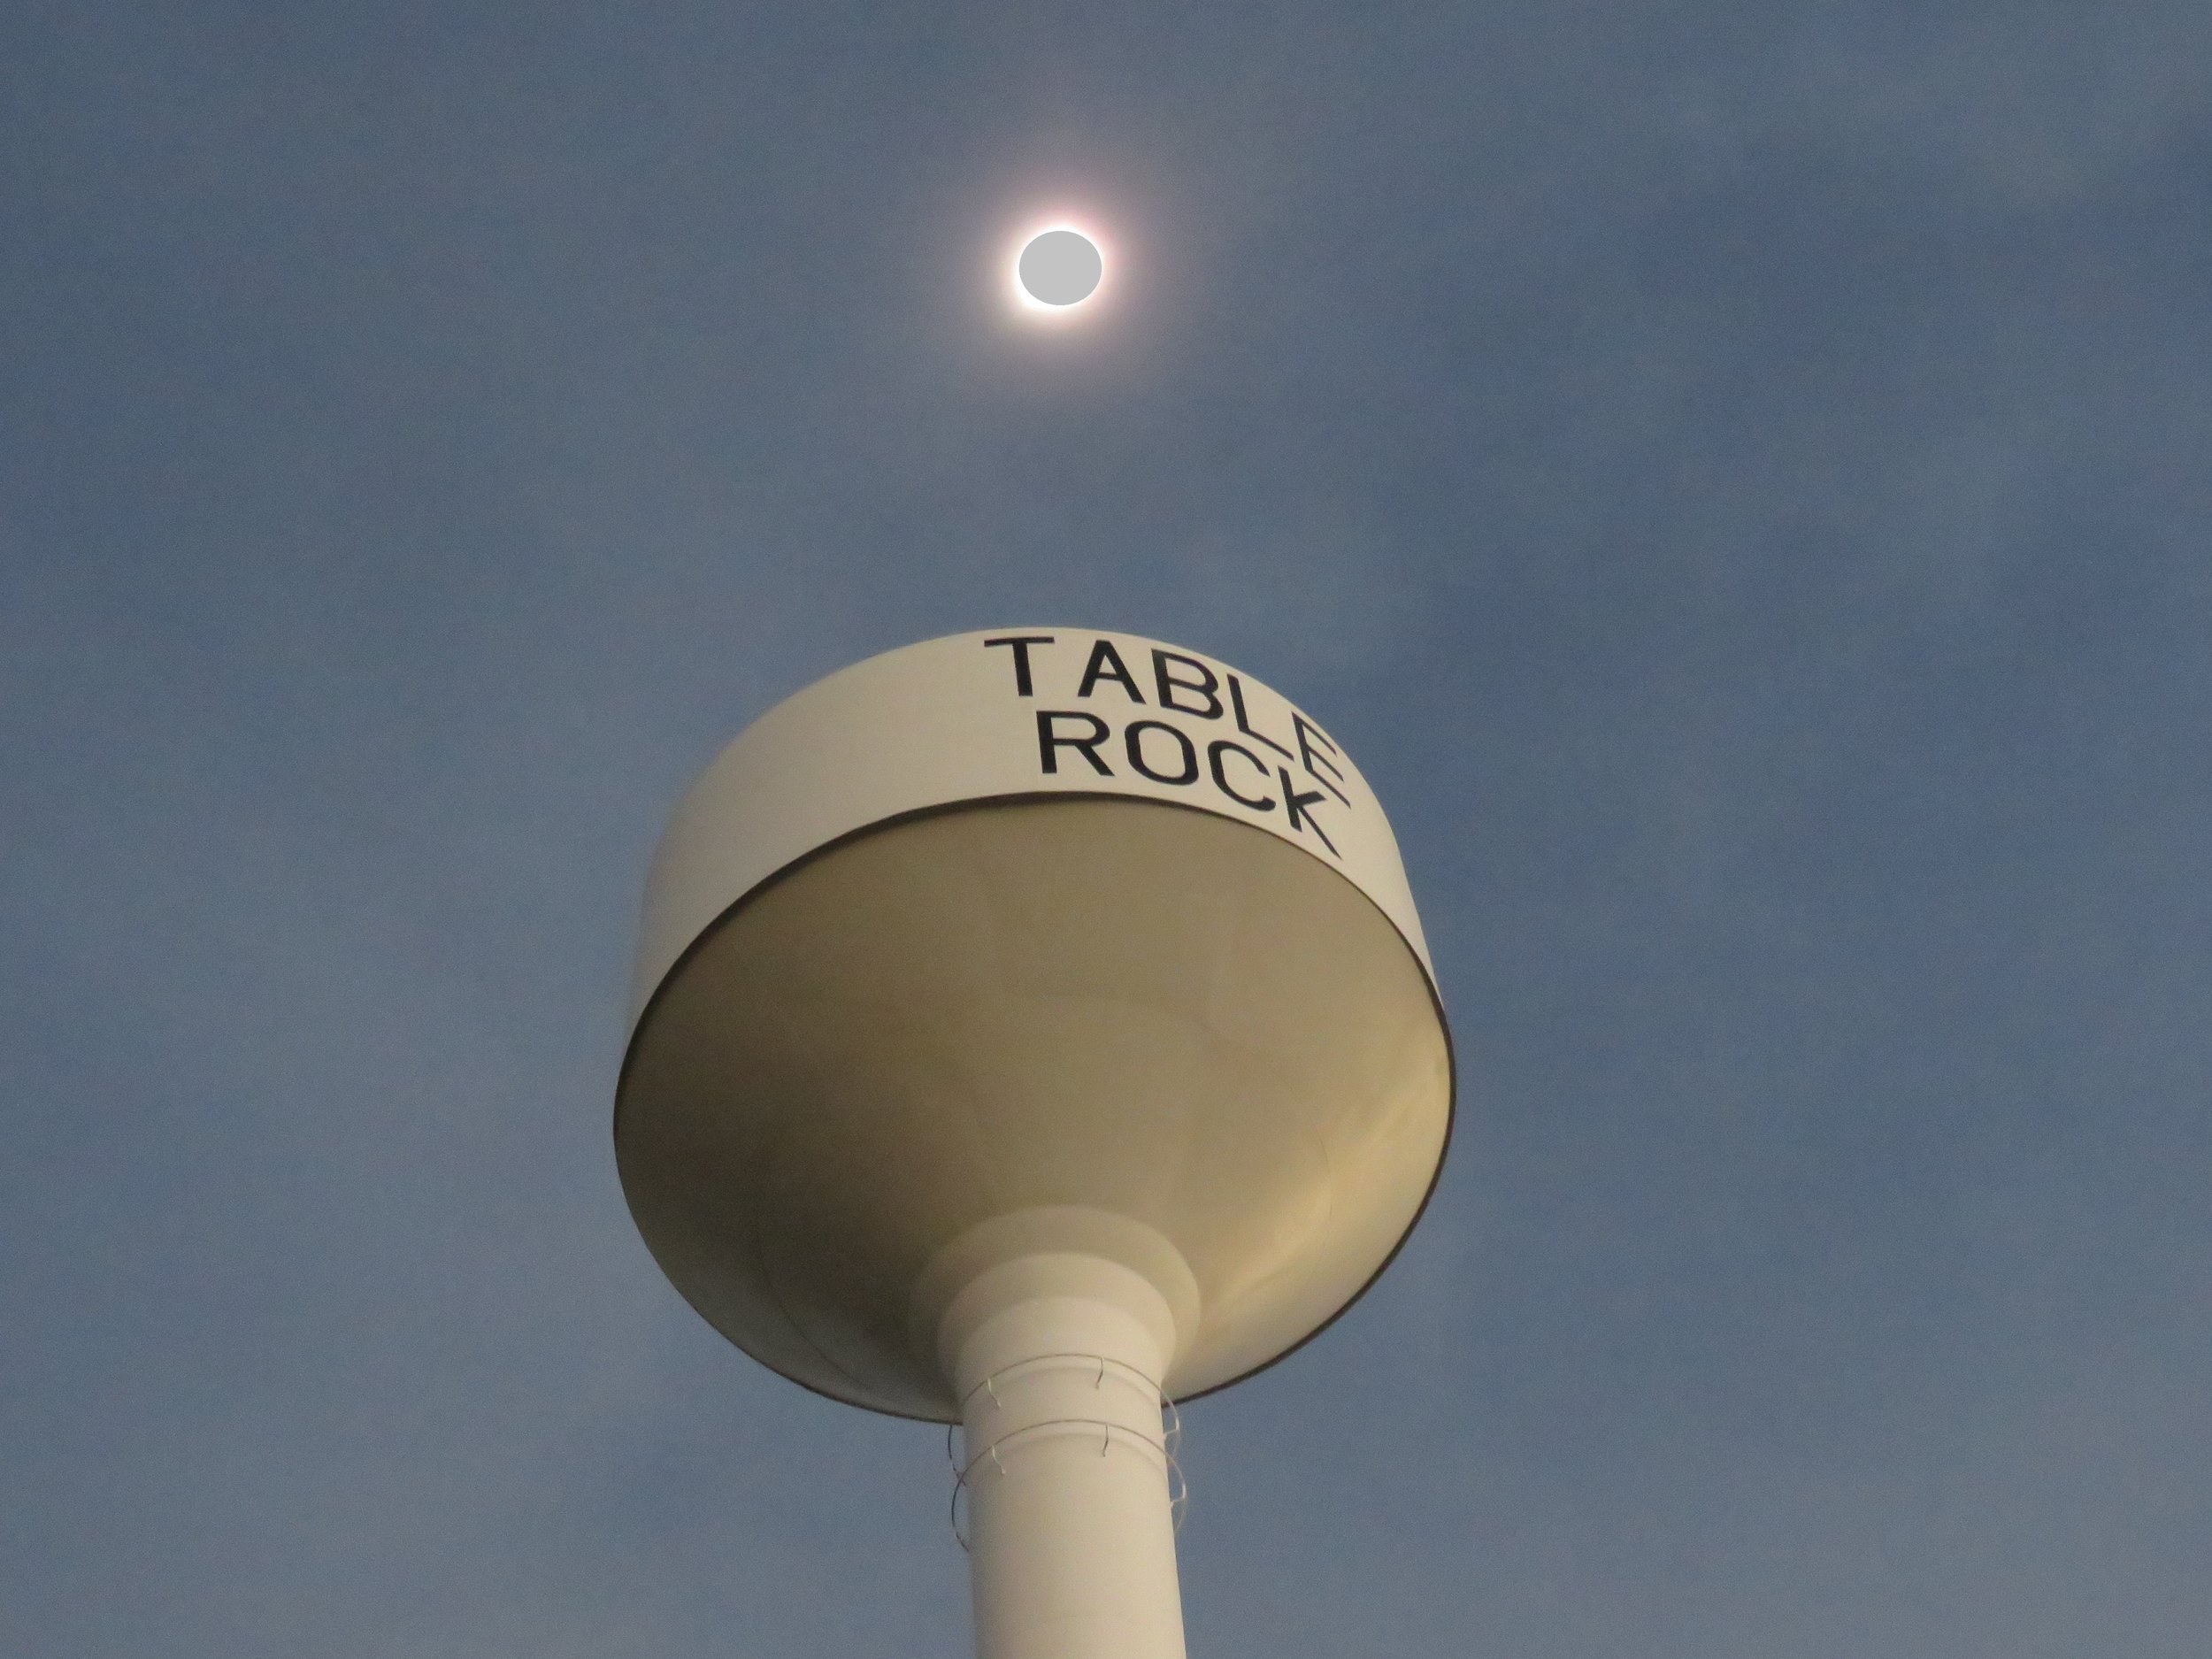 From the line of totality